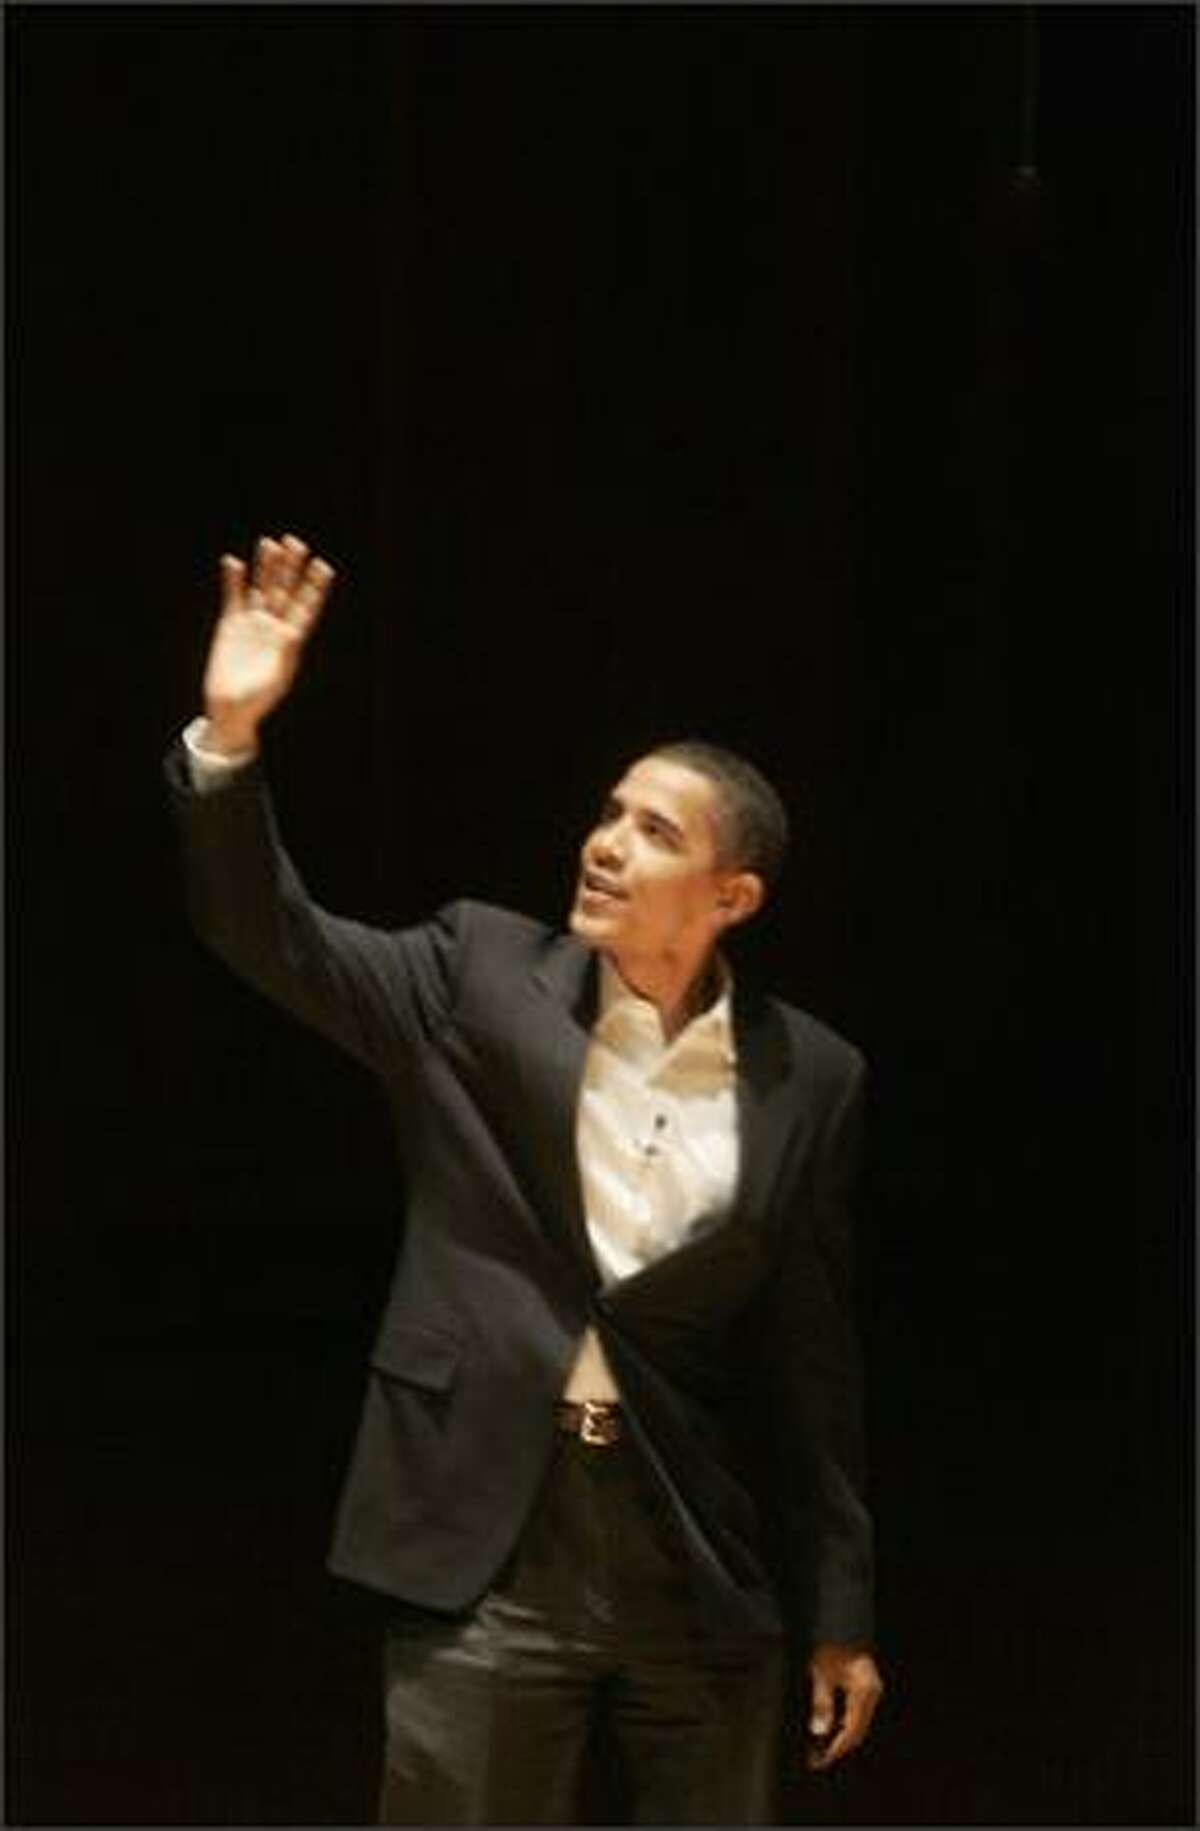 Sen. Barack Obama, D-Ill., makes a stop on his book tour at Benaroya Hall in Seattle. Obama spoke for about 30 minutes on topics covered in his book